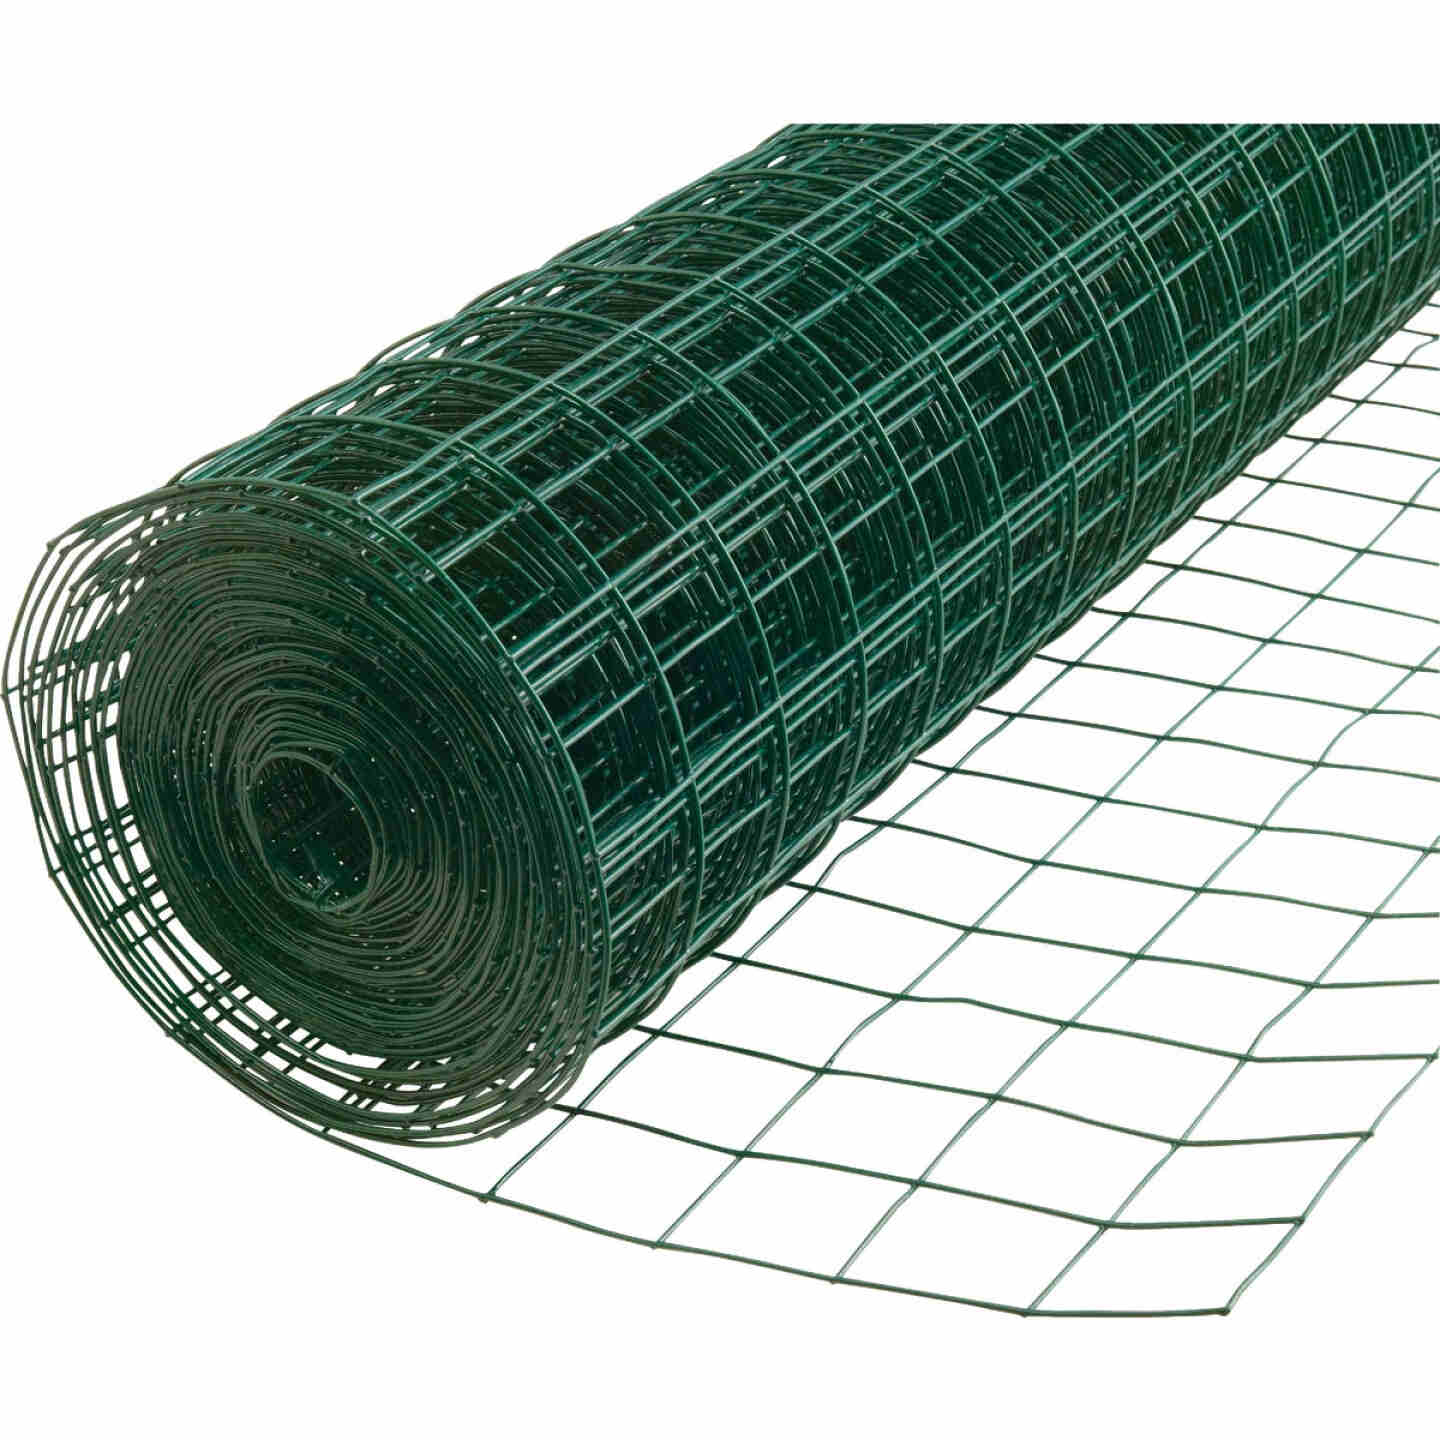 Do it 36 In. x 50 Ft. (2x2-1/2) Vinyl-Coated Galvanized Welded Wire Fence Image 1